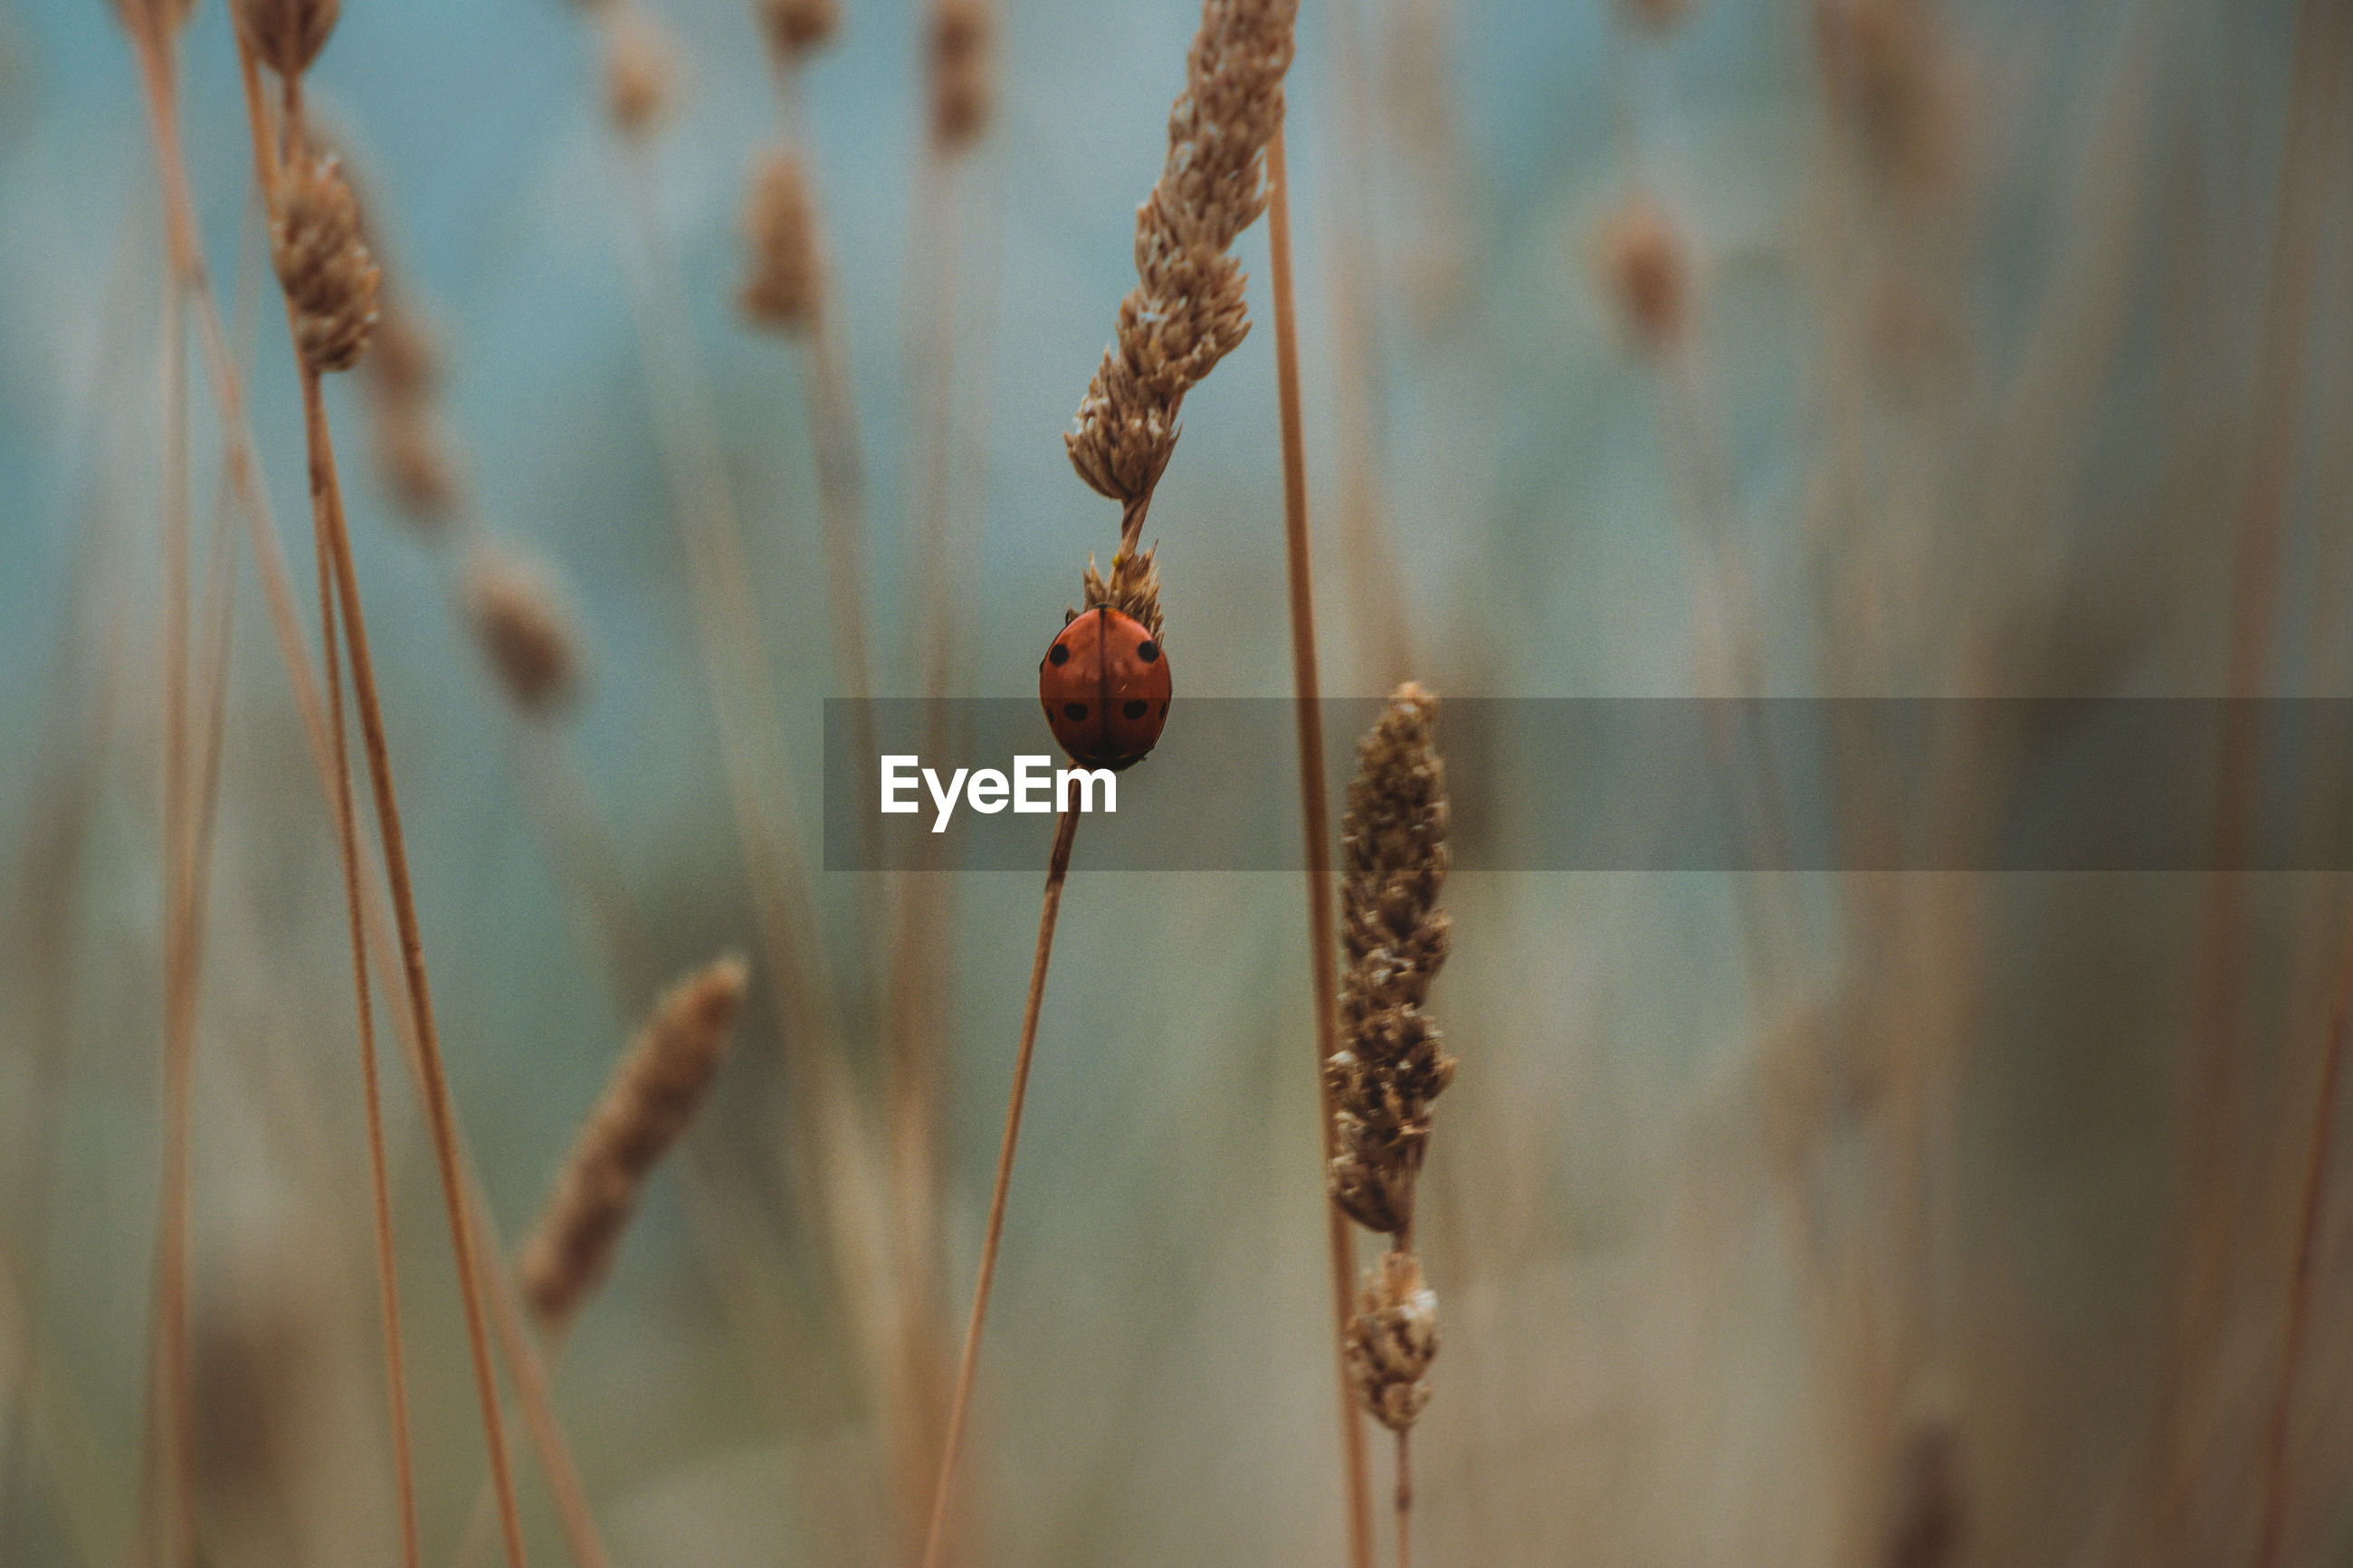 Close-up of dry flowers and a perching ladybug